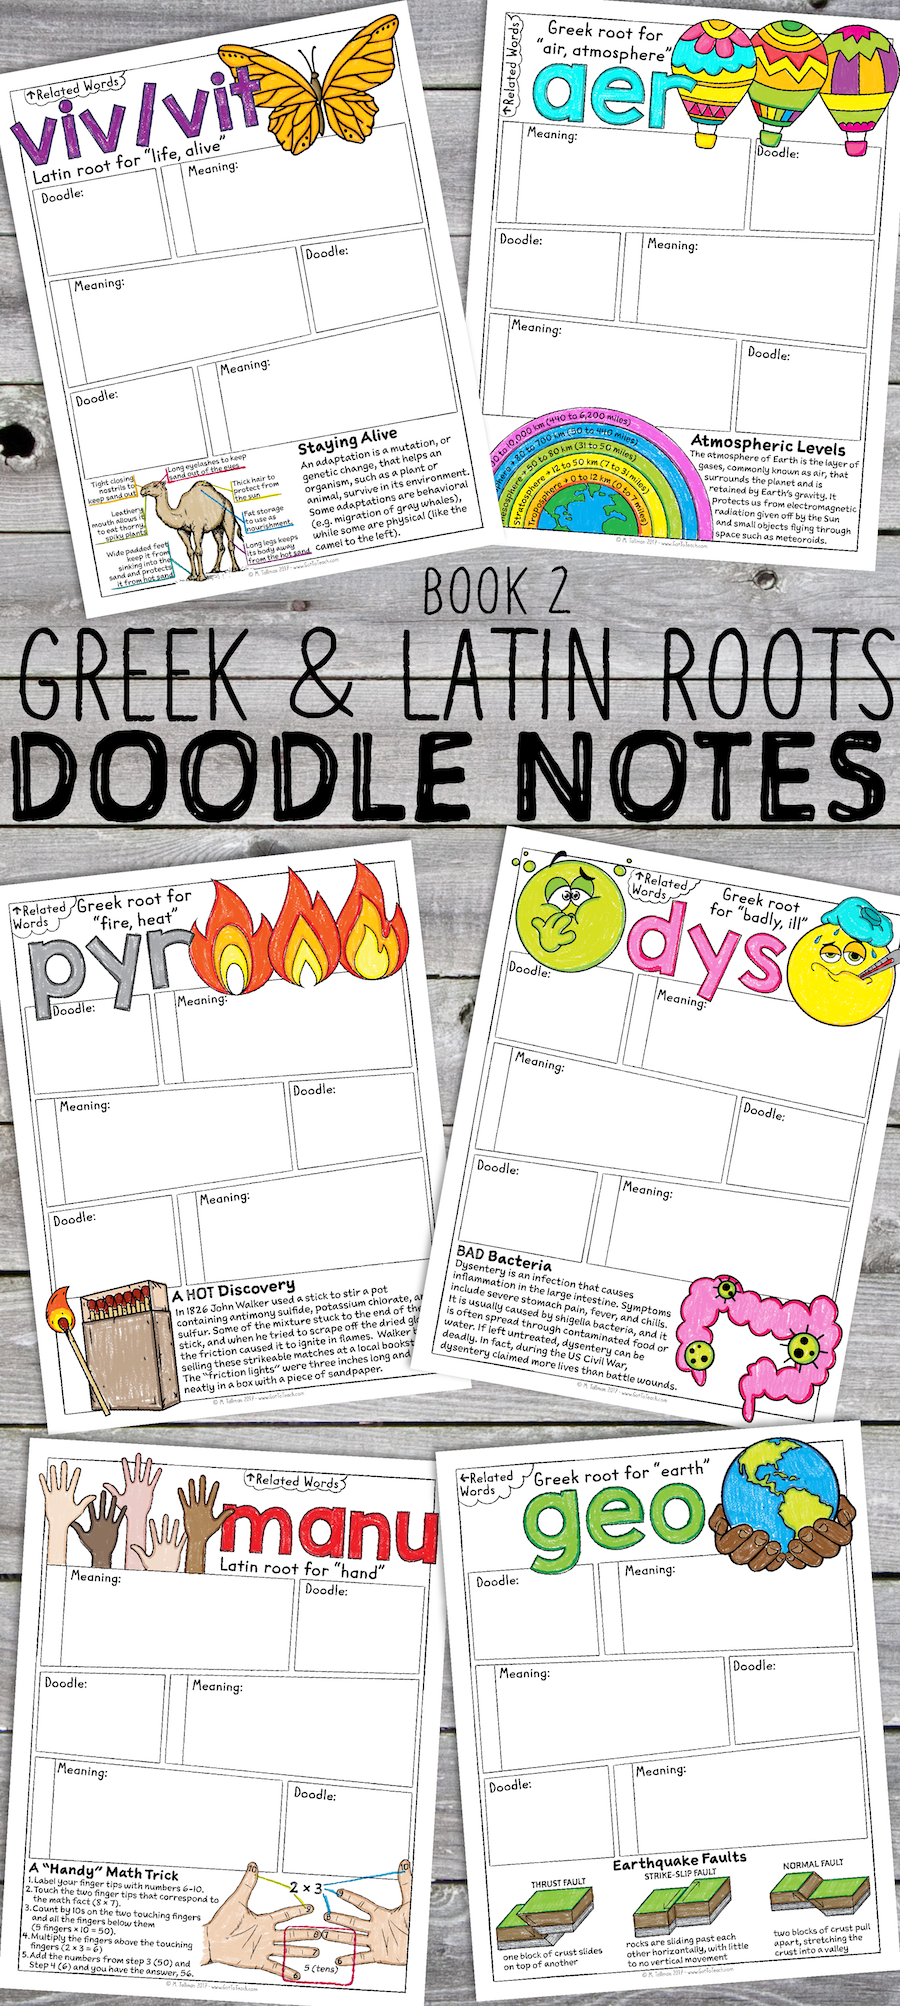 Arte Latin Root Greek And Latin Roots Sketch Notes Book 2 Lessons Pinterest